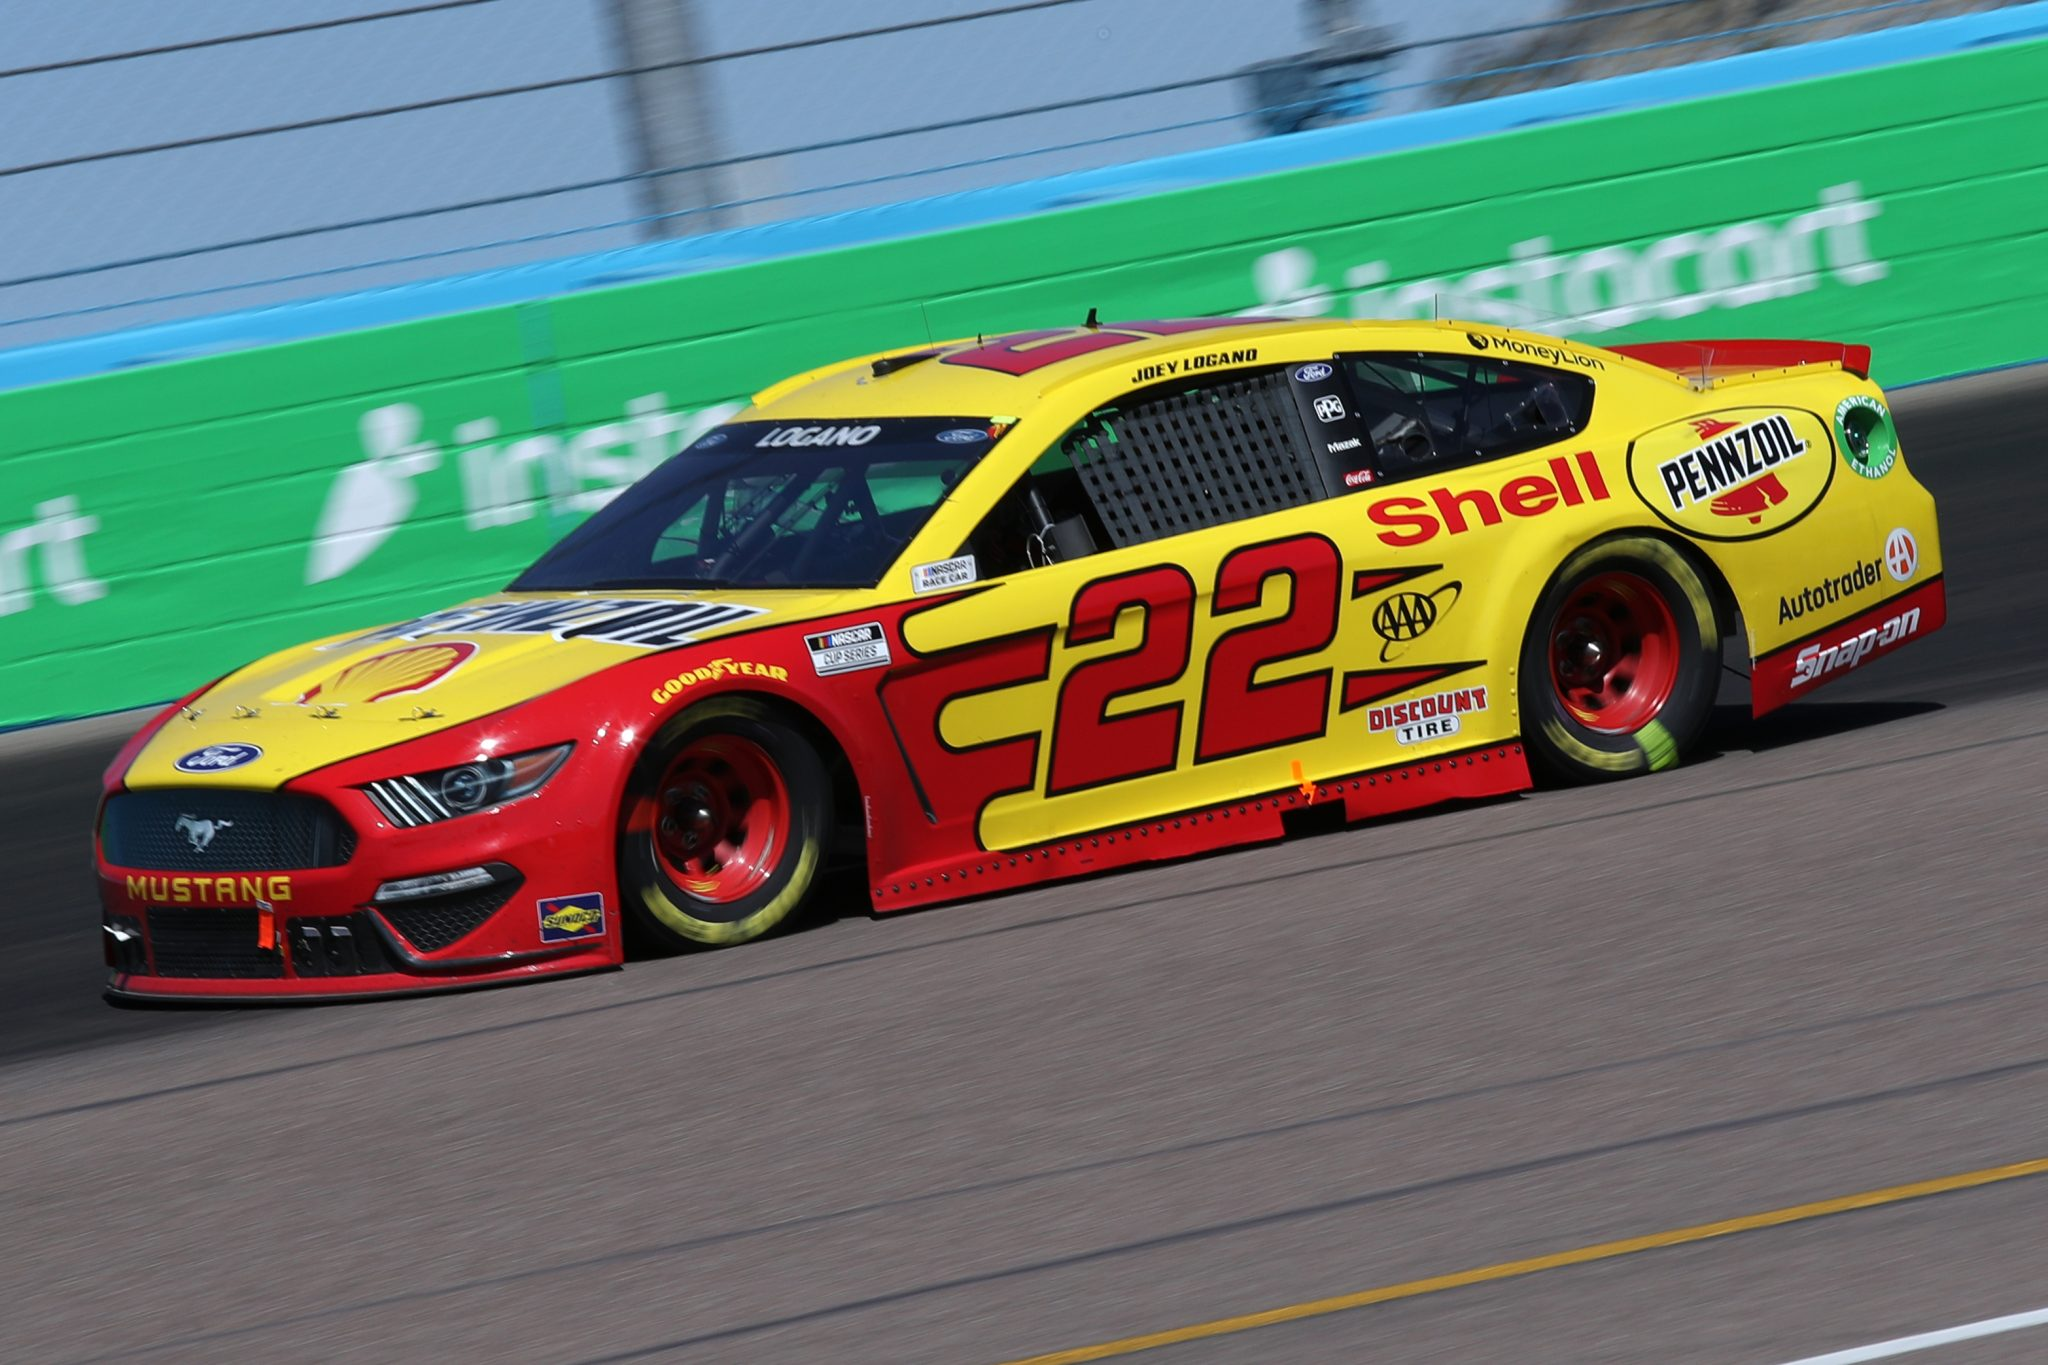 AVONDALE, ARIZONA - MARCH 14: Joey Logano, driver of the #22 Shell Pennzoil Ford, drives during the NASCAR Cup Series Instacart 500 at Phoenix Raceway on March 14, 2021 in Avondale, Arizona. (Photo by Sean Gardner/Getty Images) | Getty Images